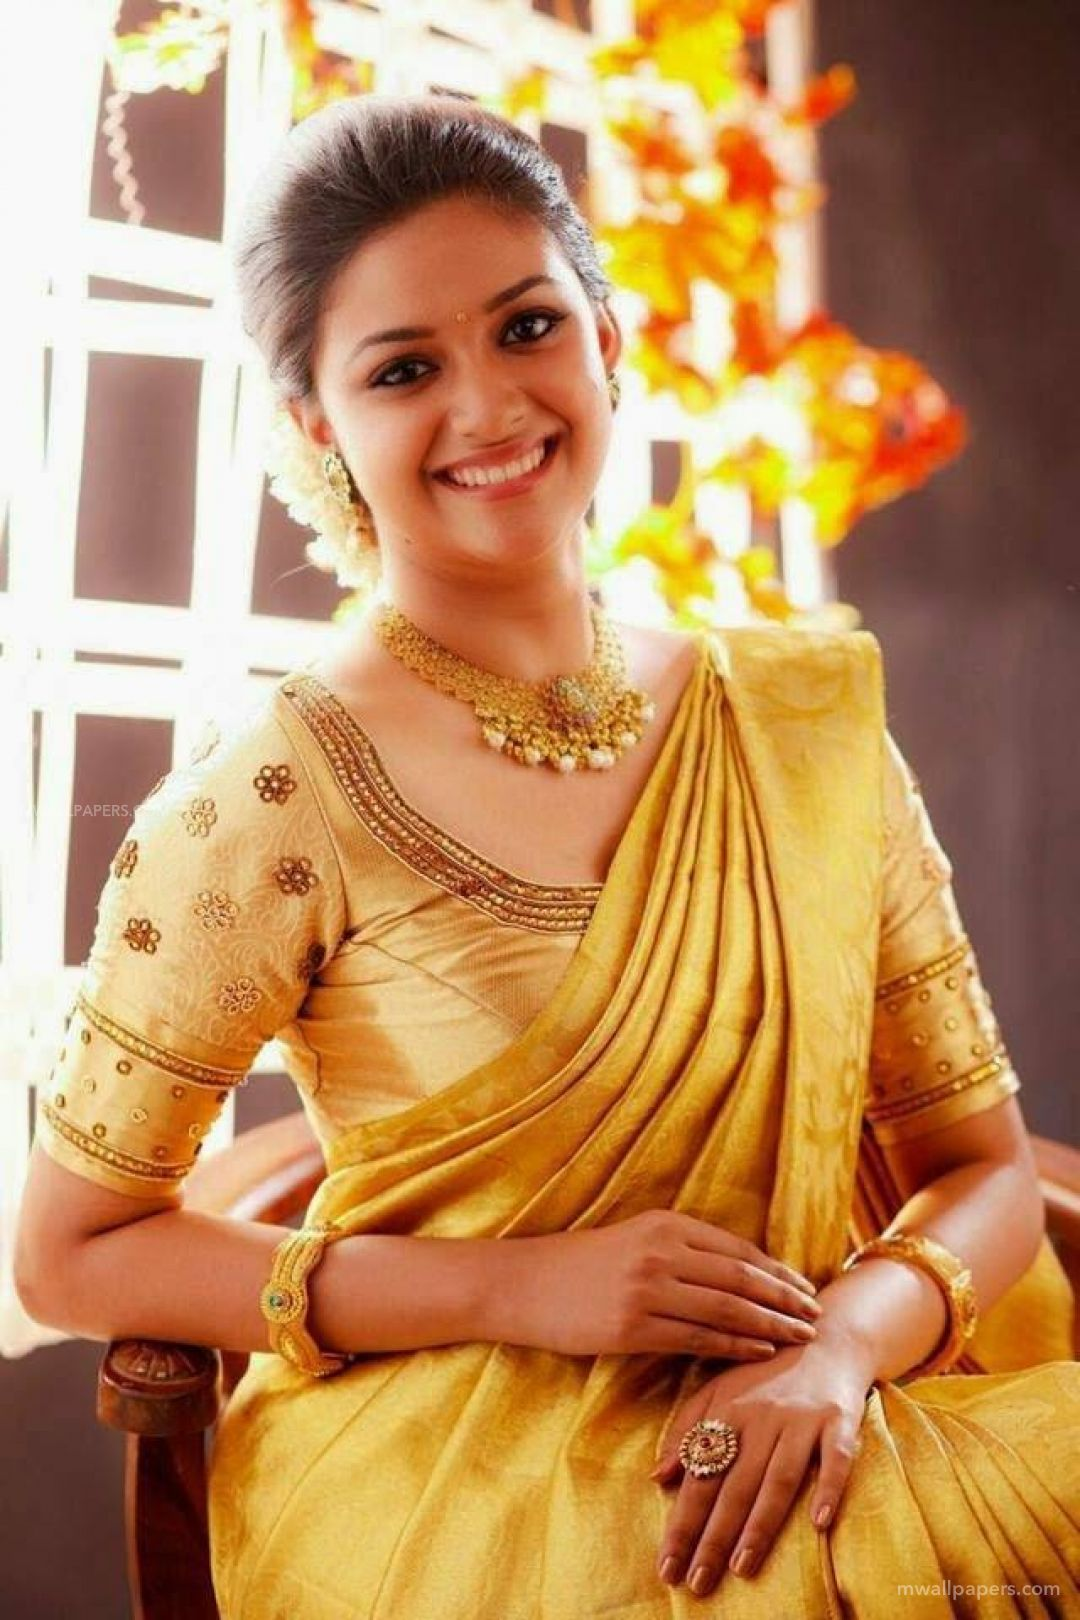 Keerthy Suresh HD Wallpapers (Desktop Background / Android / iPhone) (1080p, 4k) (58367) - Keerthy Suresh